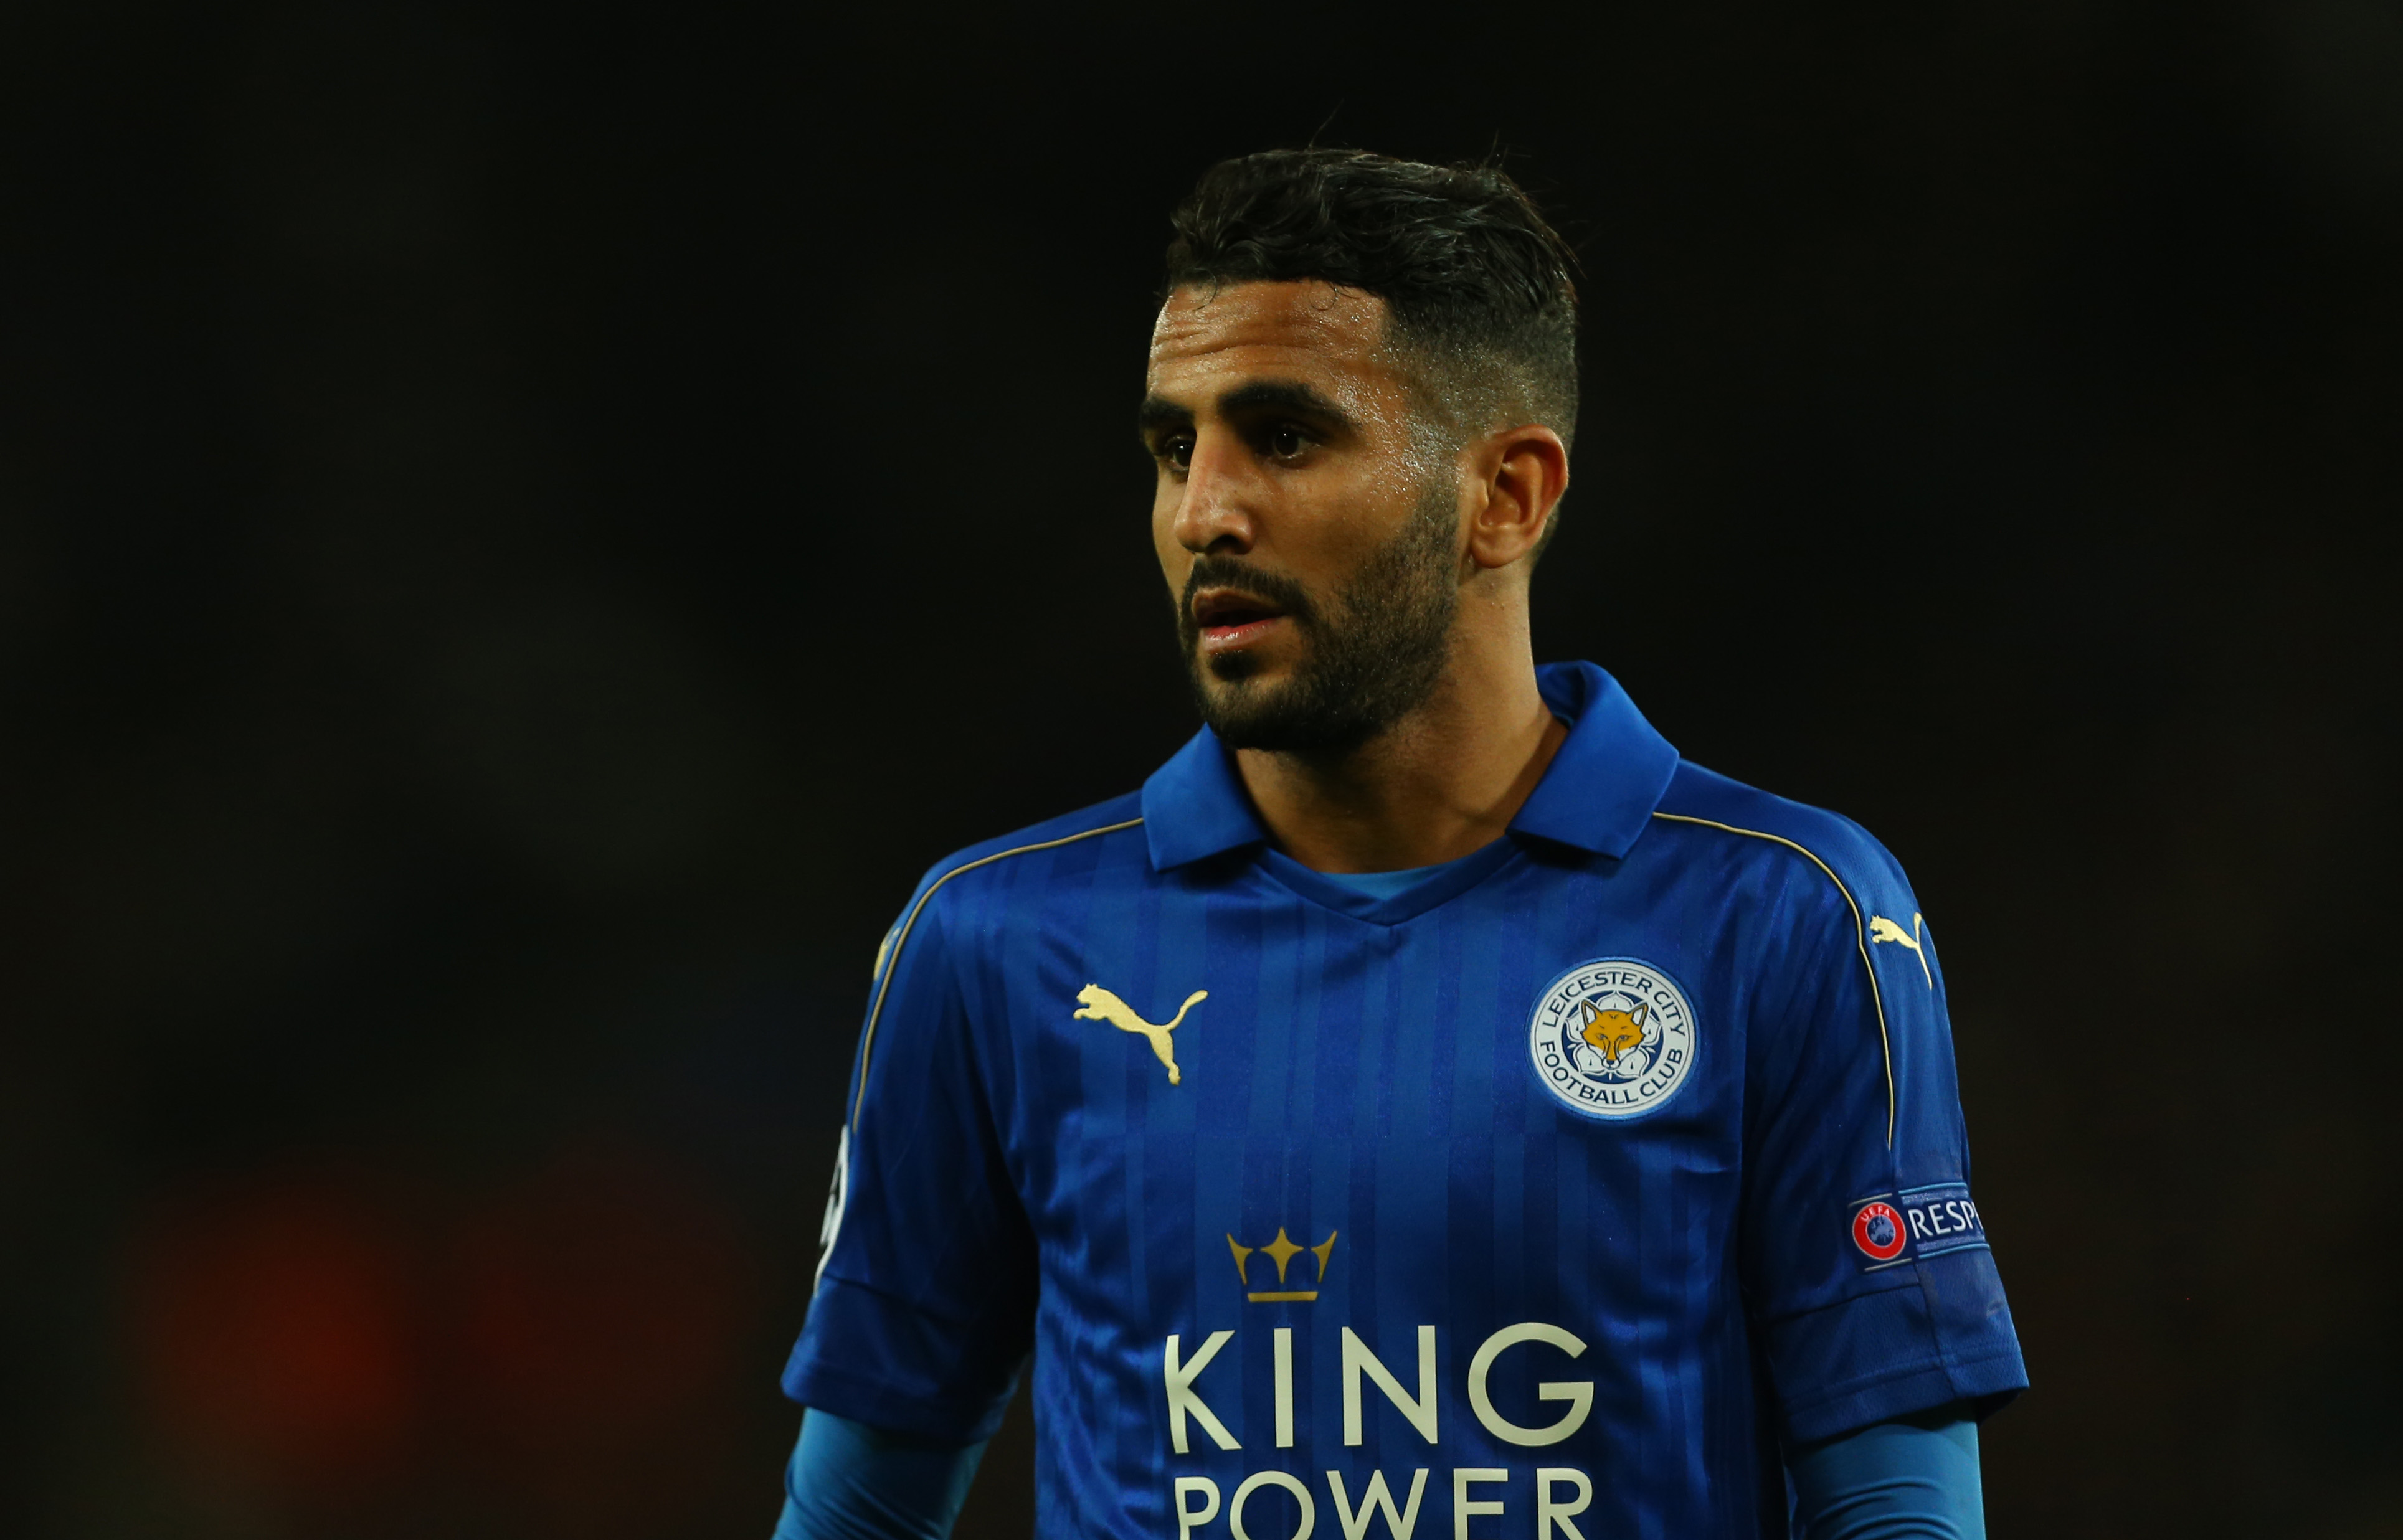 Why Riyad Mahrez was dropped for Leicester's clash with Chelsea